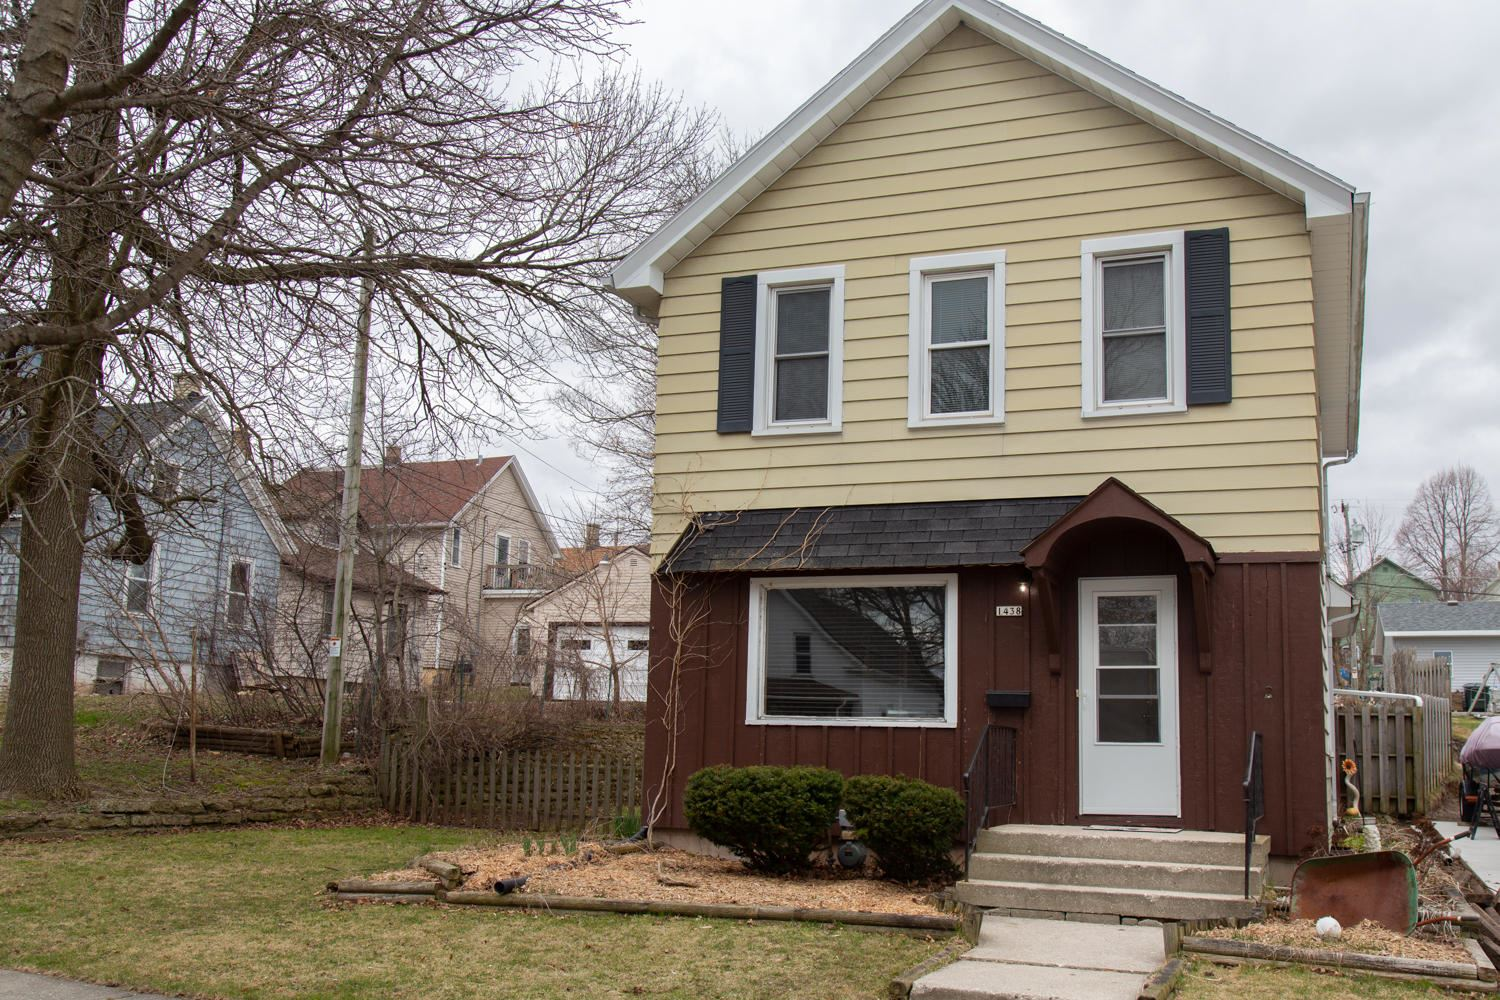 1438 S 10TH ST, Sheboygan, WI 53081 - #: 1684874